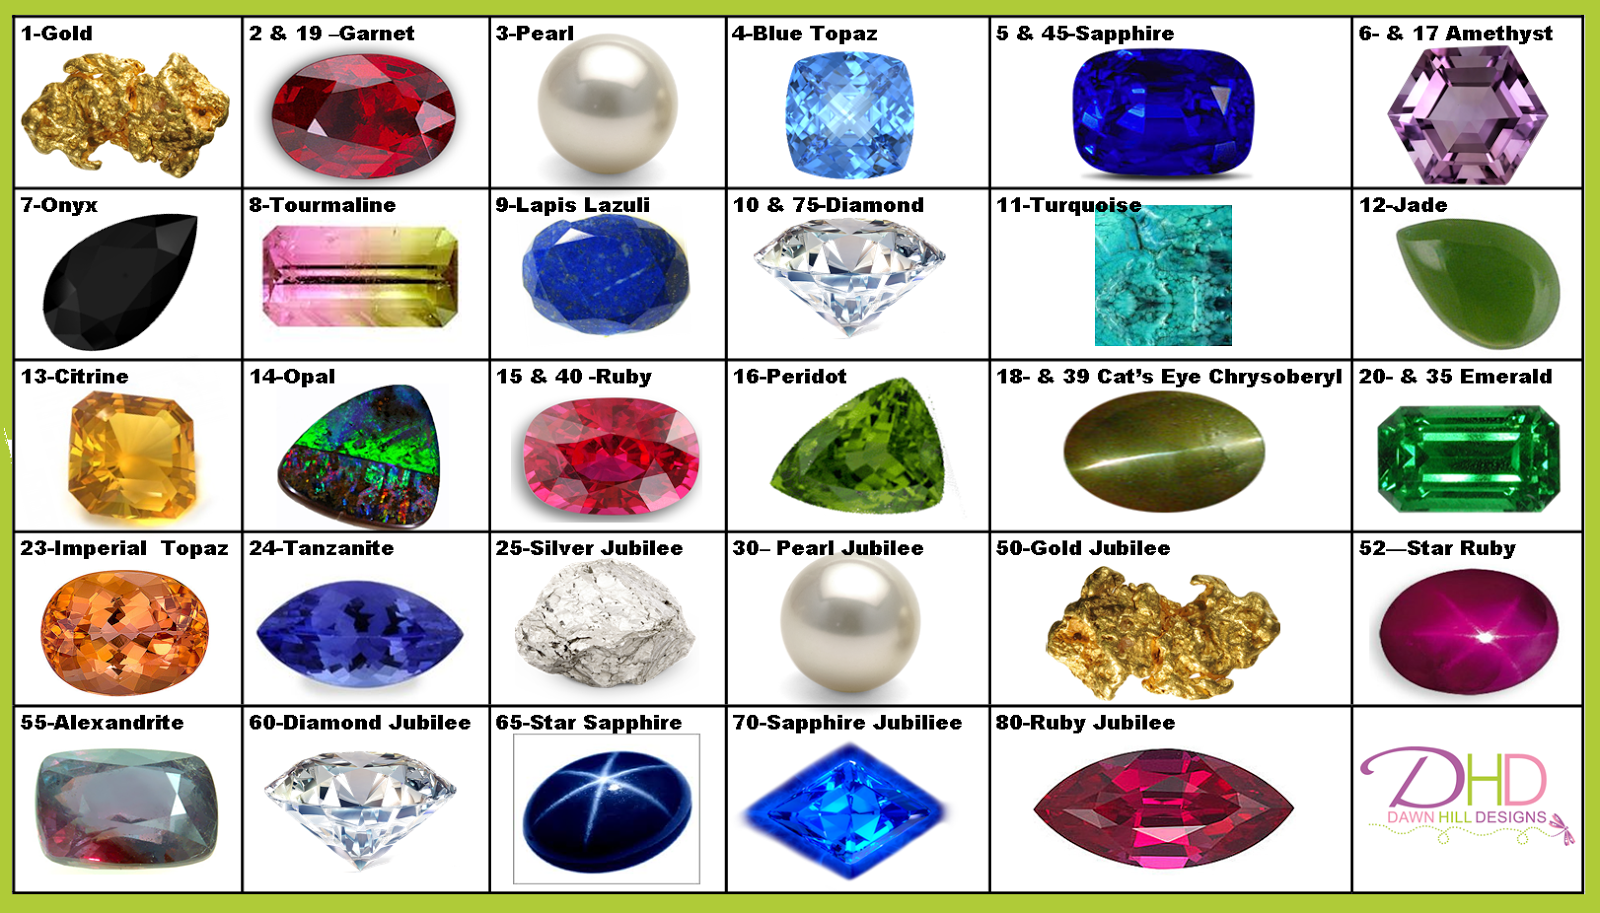 Dawn Hill Designs: Gemstones for Anniversaries